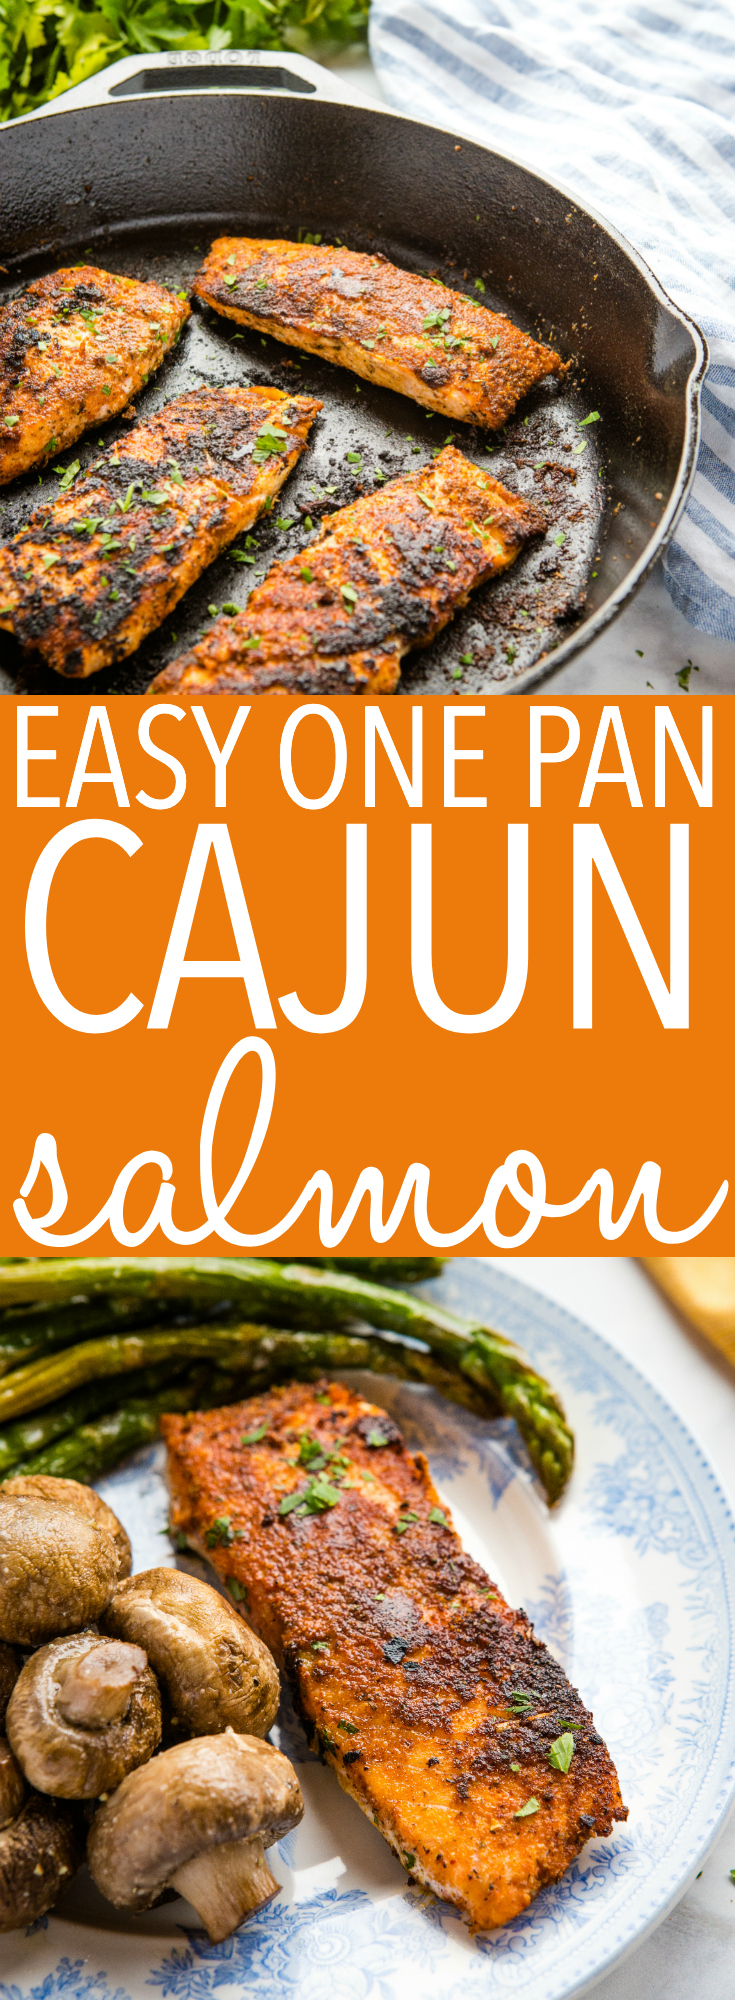 This Easy One Pan Cajun Salmon is the perfect low-carb main dish that's packed with spicy cajun flavor and easy to make in minutes! Recipe from thebusybaker.ca! #salmon #lowcarb #lowfat #omega3 #healthy #cajun #spicy #flavor #easymeal #maindish #seafood #easyrecipe #recipe #homemade via @busybakerblog